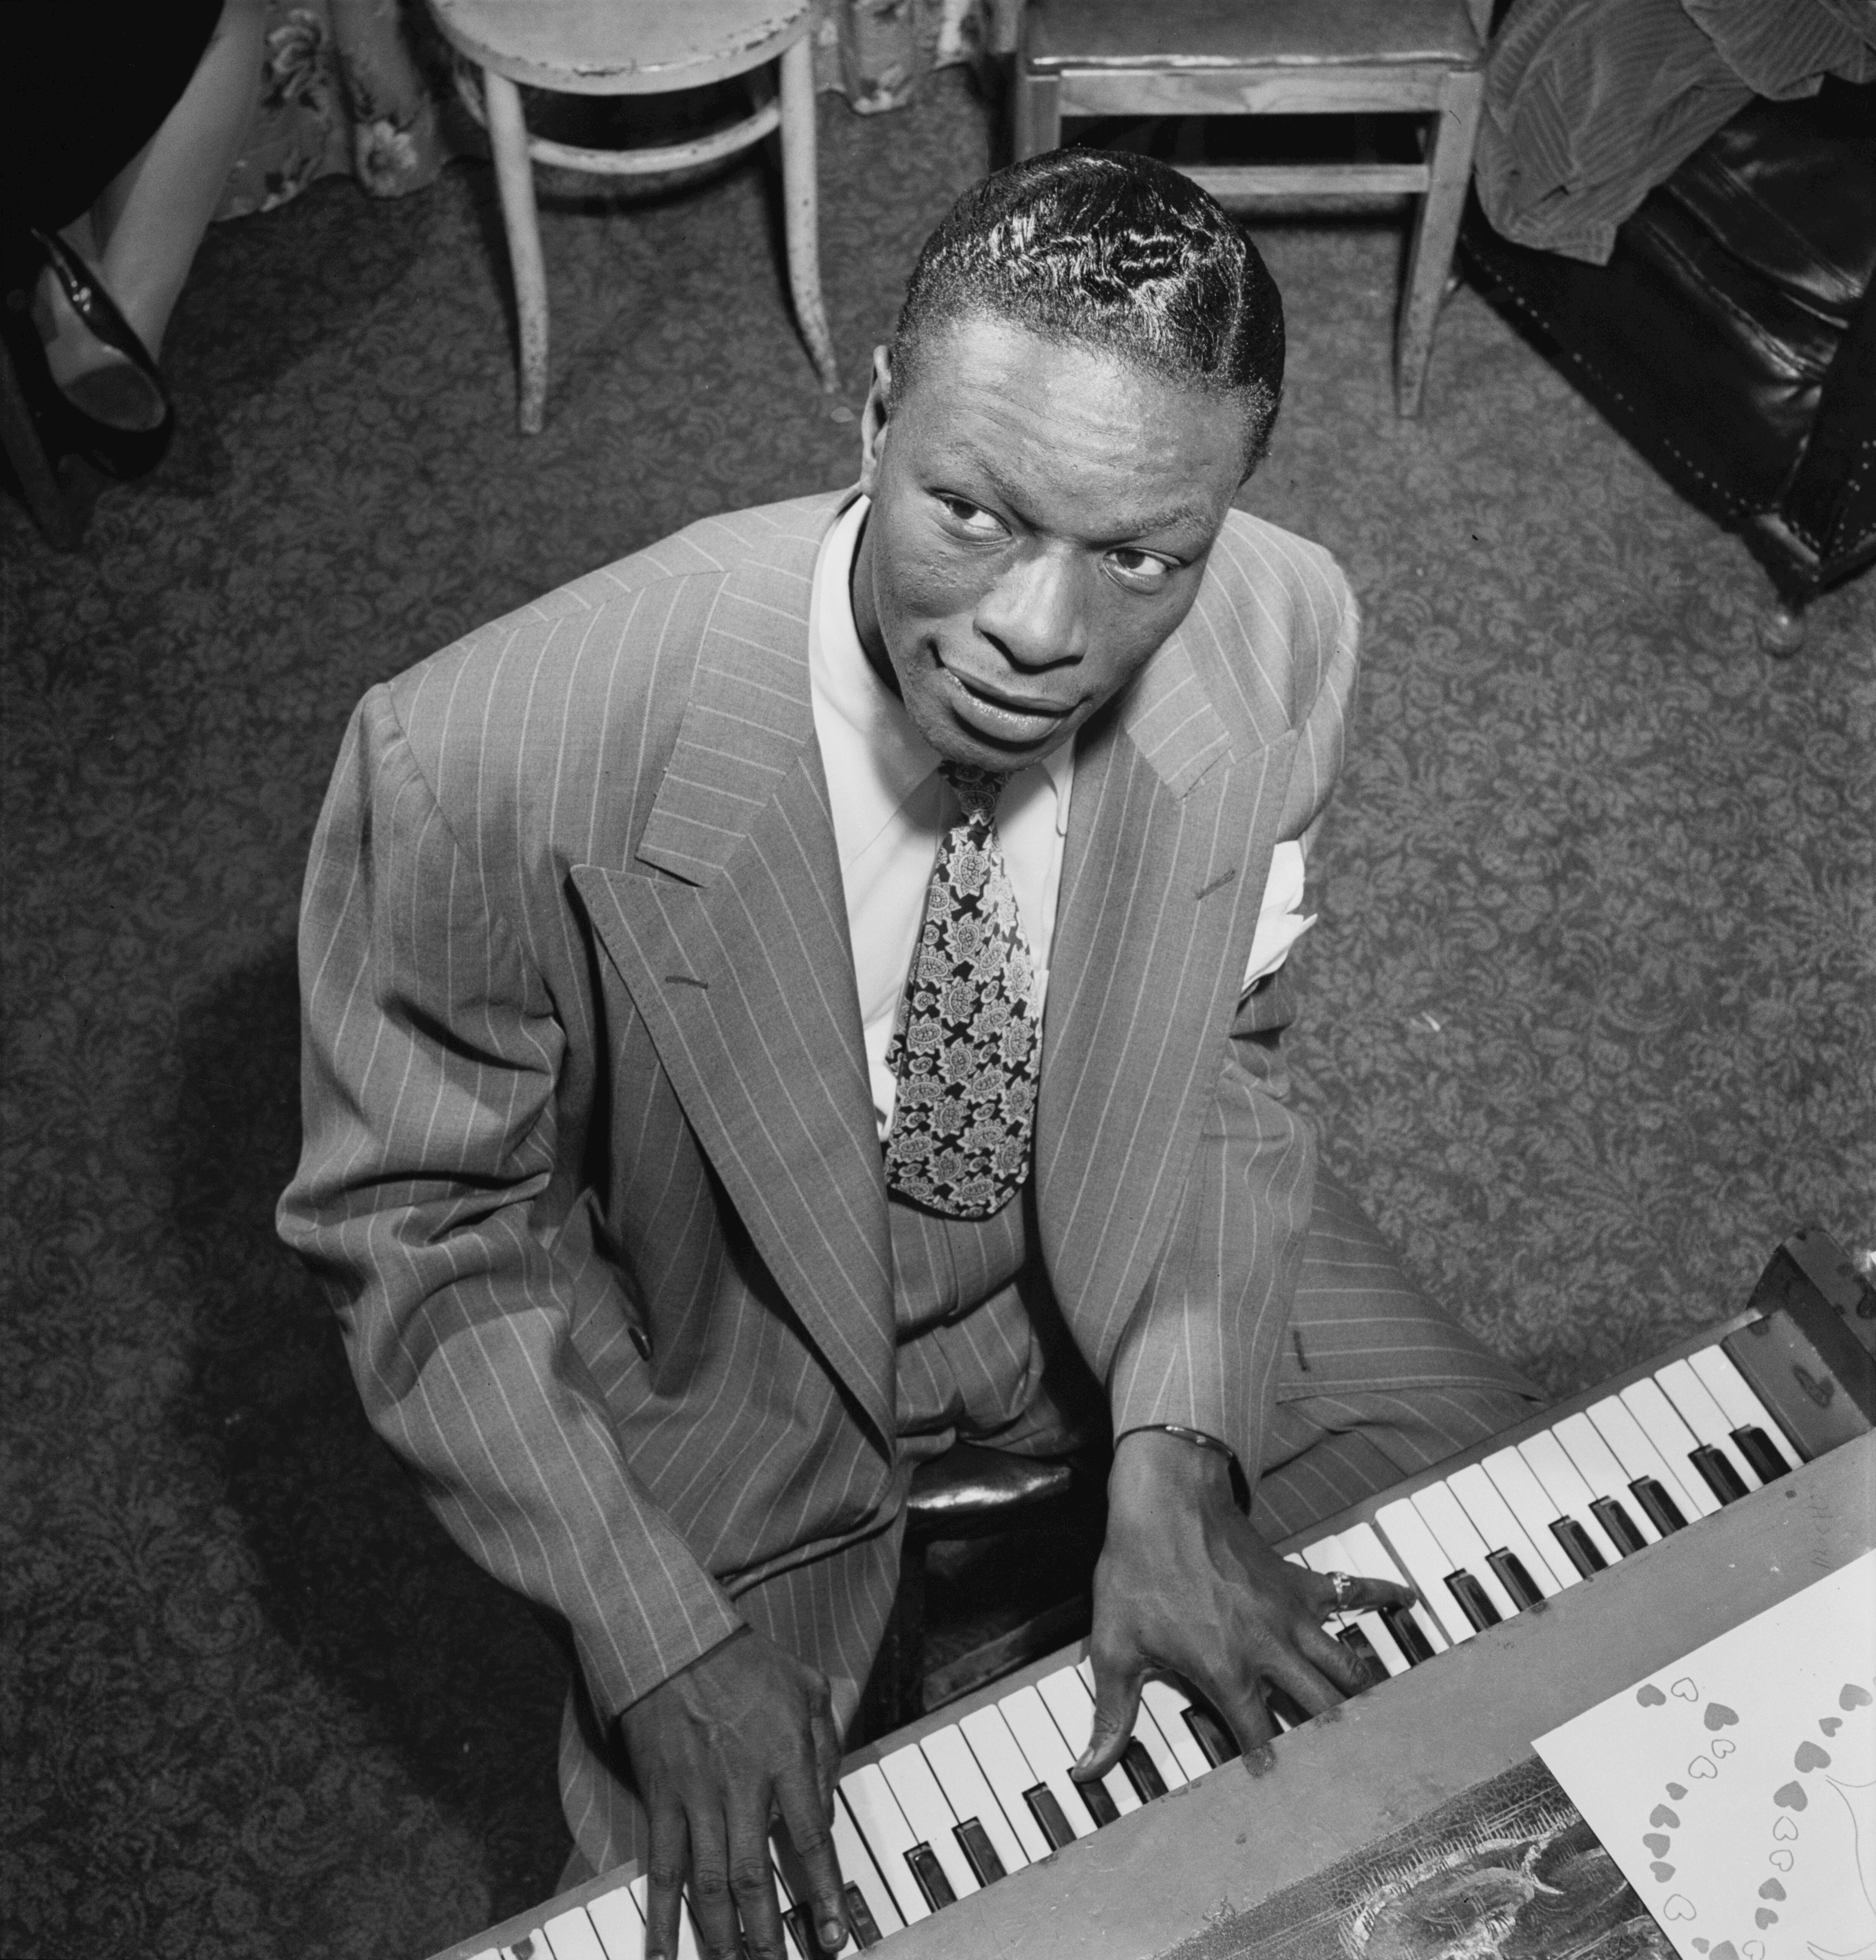 Nat King Cole was born on this day in 1919